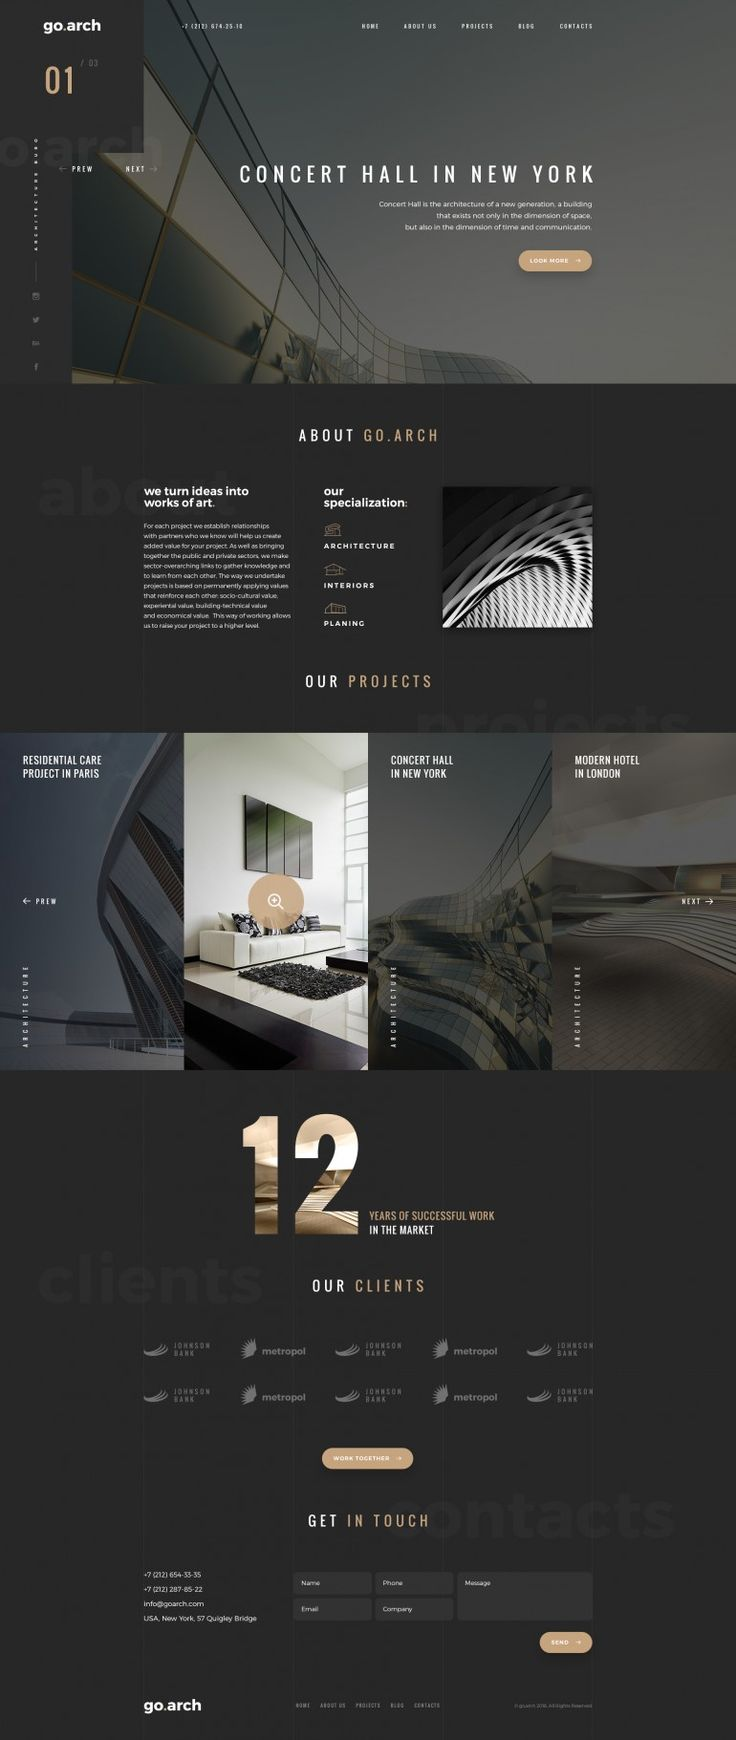 goarch architecture interior - Web Design Ideas